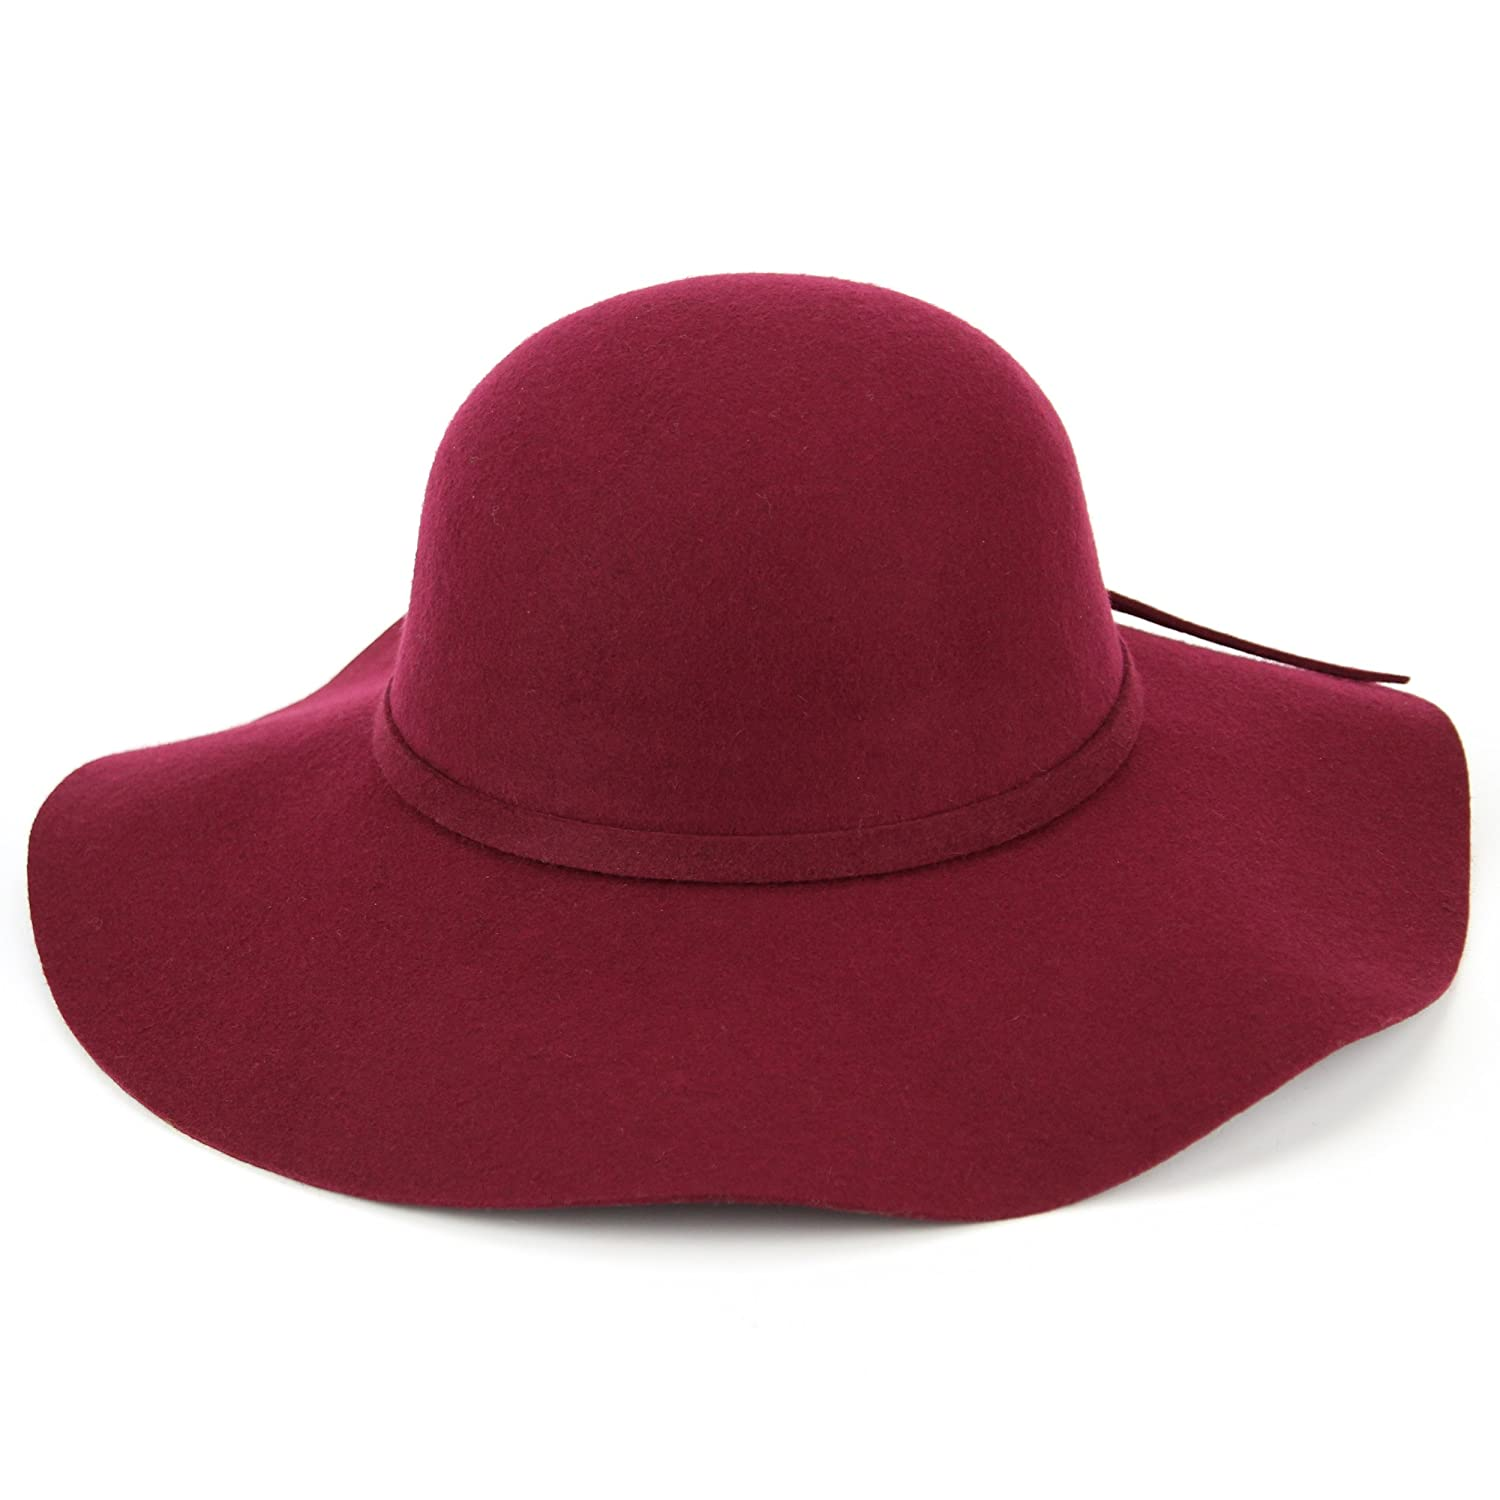 0ee6c50218c Macahel ladies wide brim wool felt floppy hat - Maroon  Amazon.co.uk   Clothing